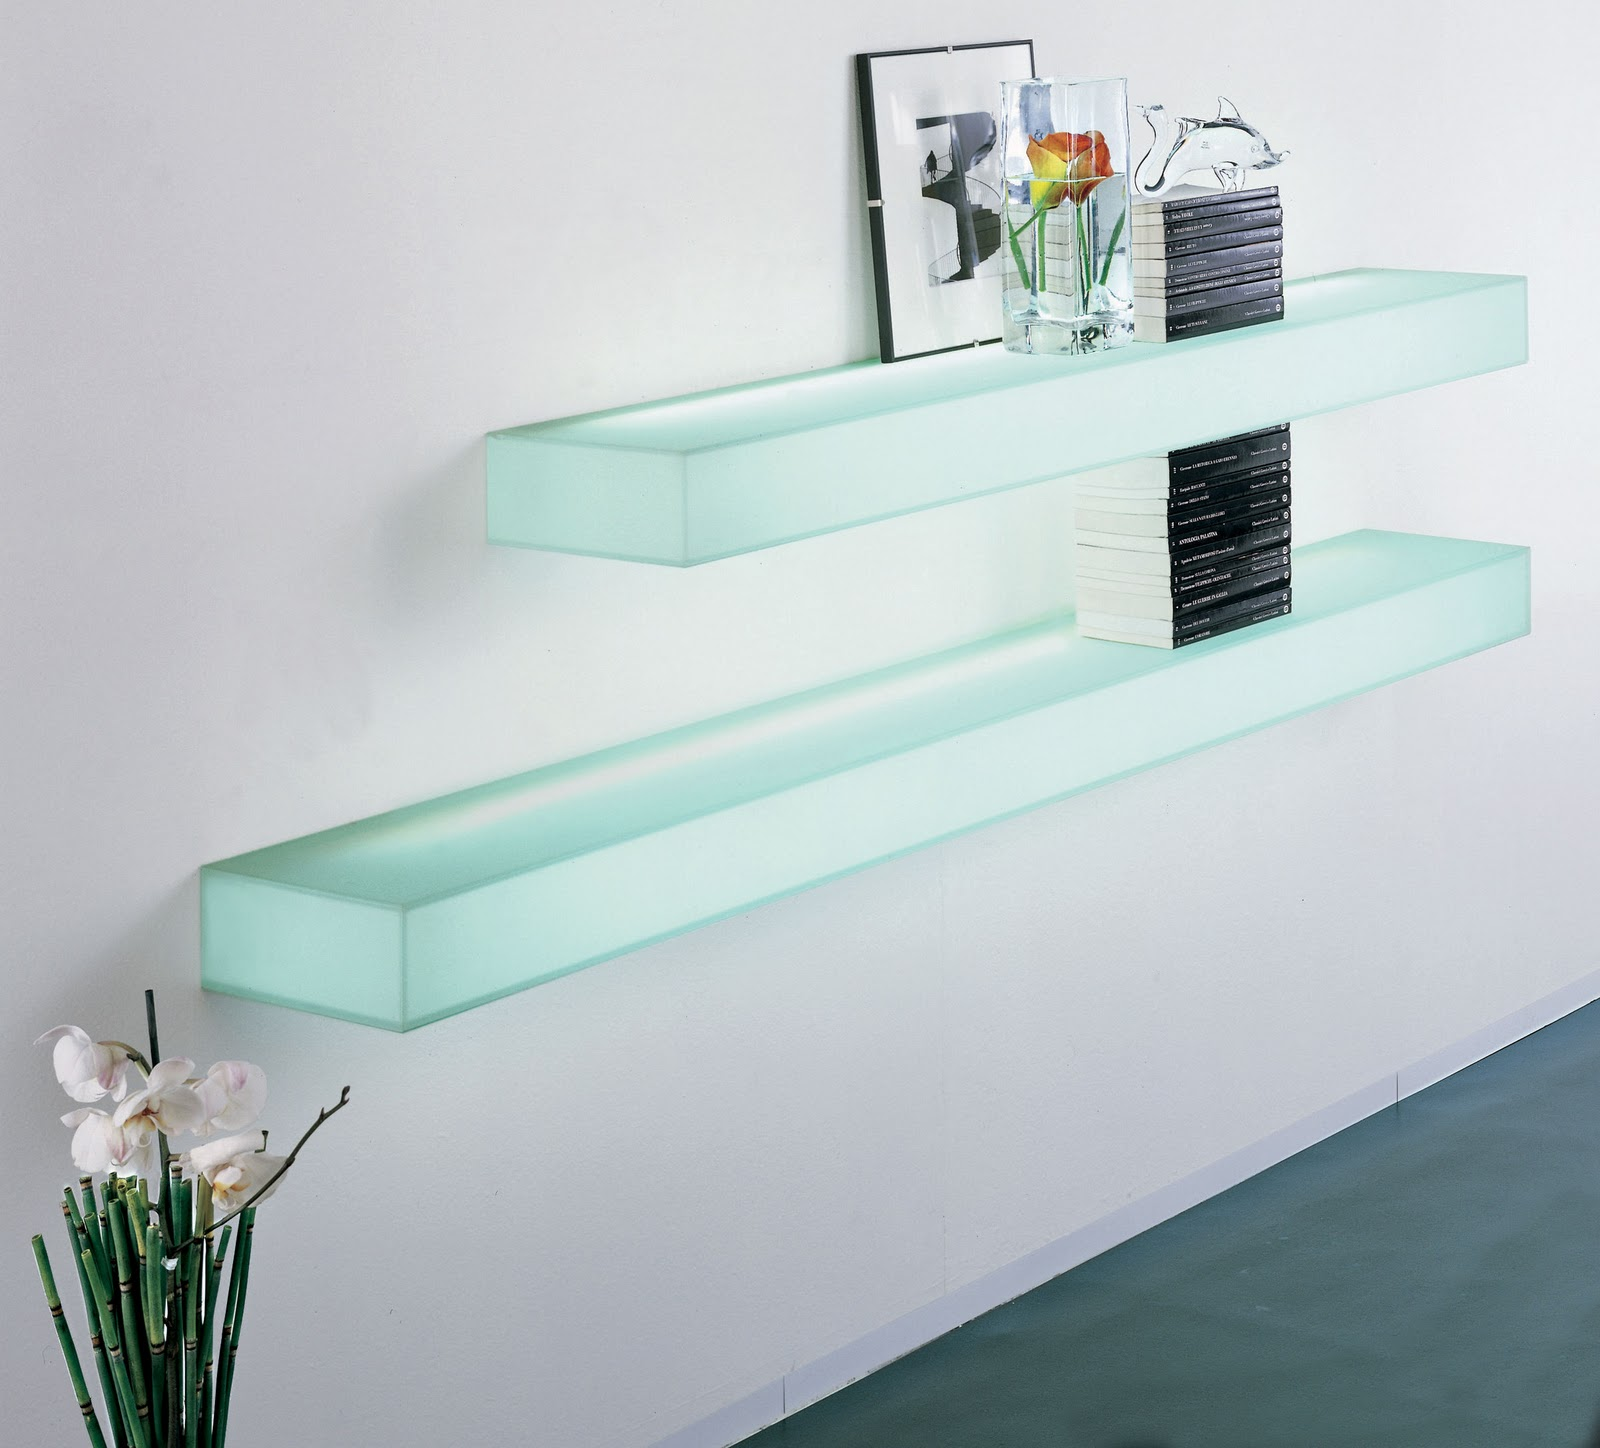 Illuminated wall shelving modern design by moderndesign illuminated wall shelving amipublicfo Image collections